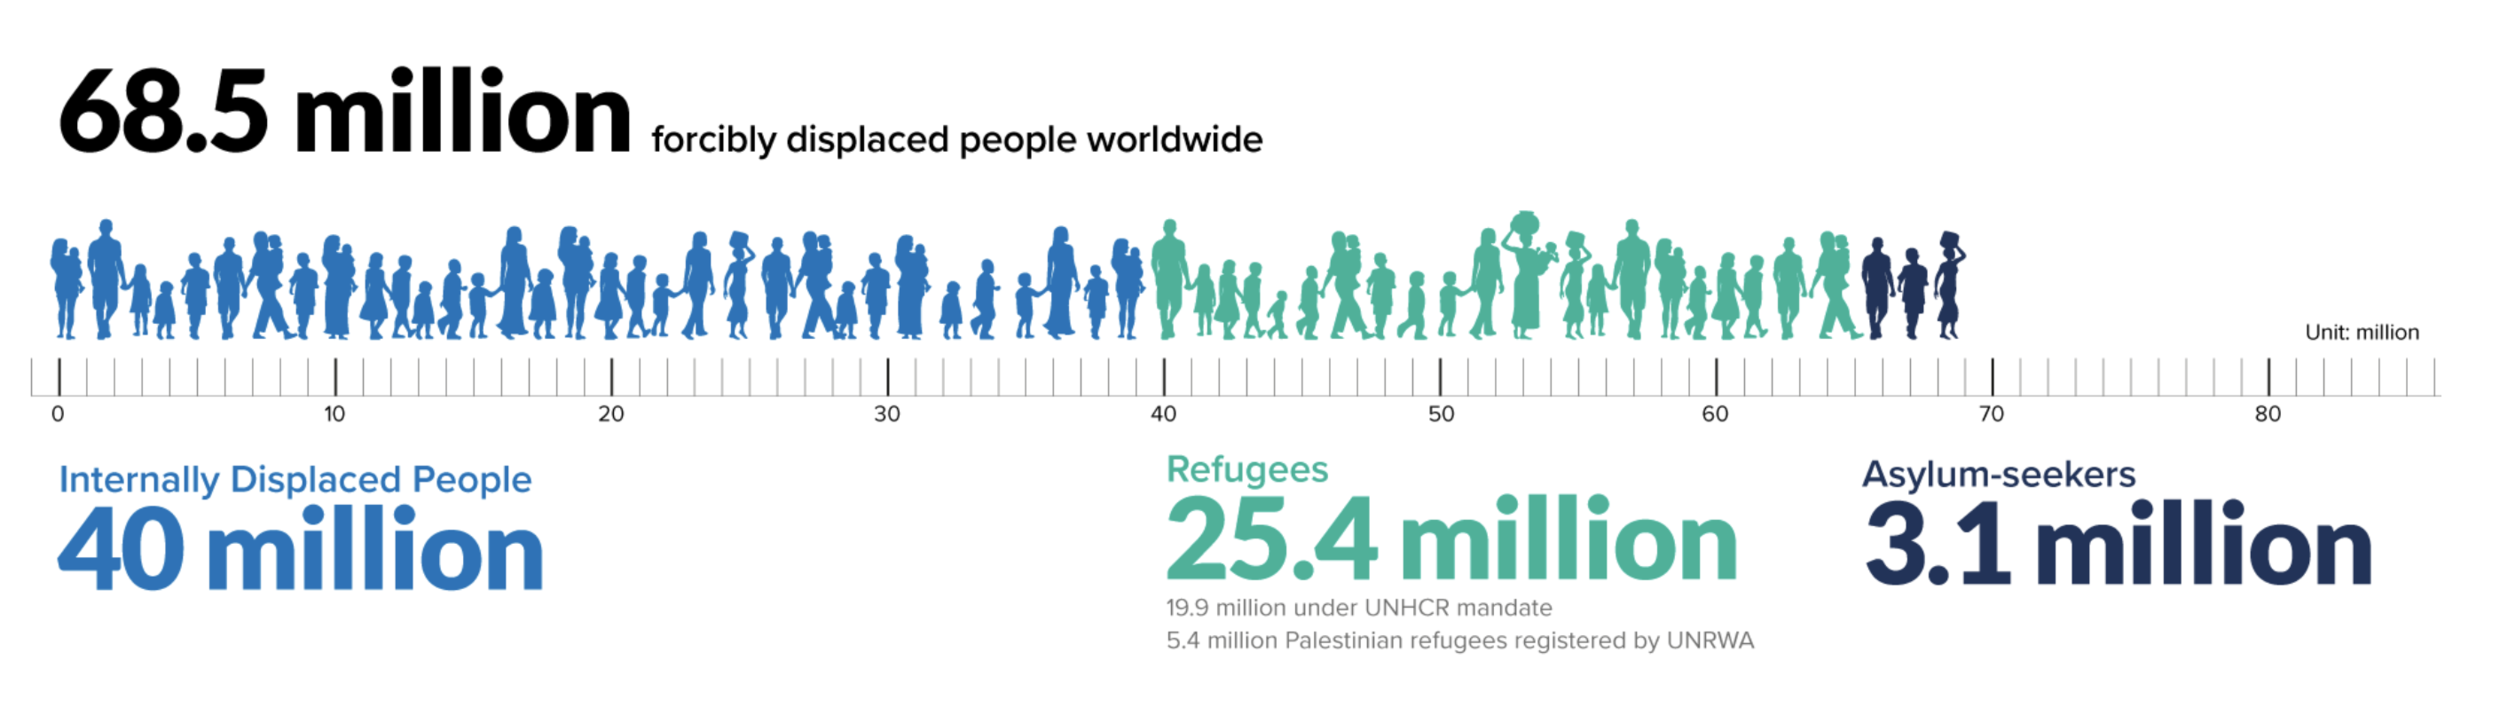 Source: UNHCR 19 June 2018